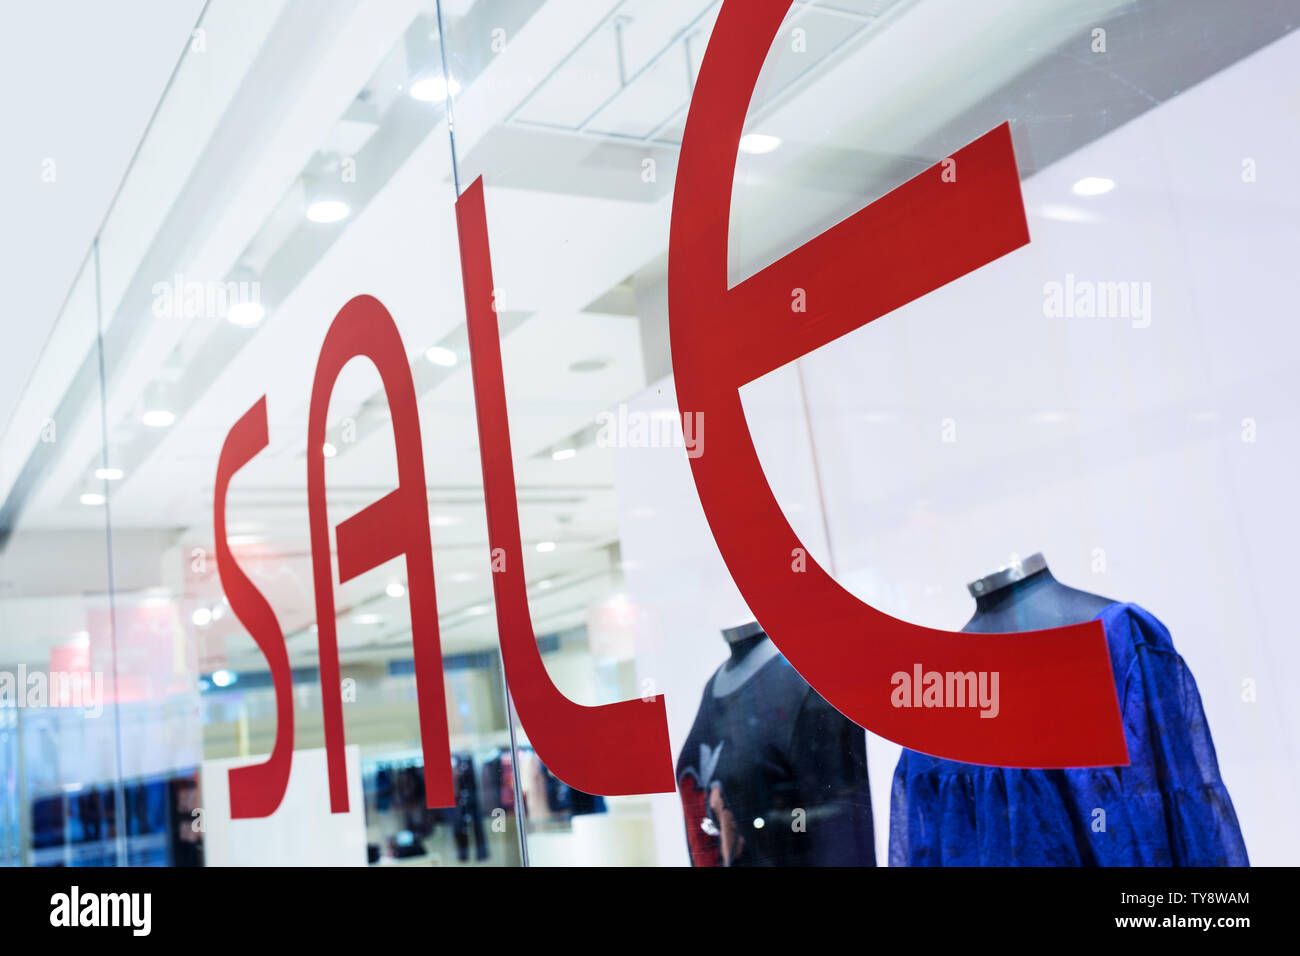 sale word with shop window Stock Photo